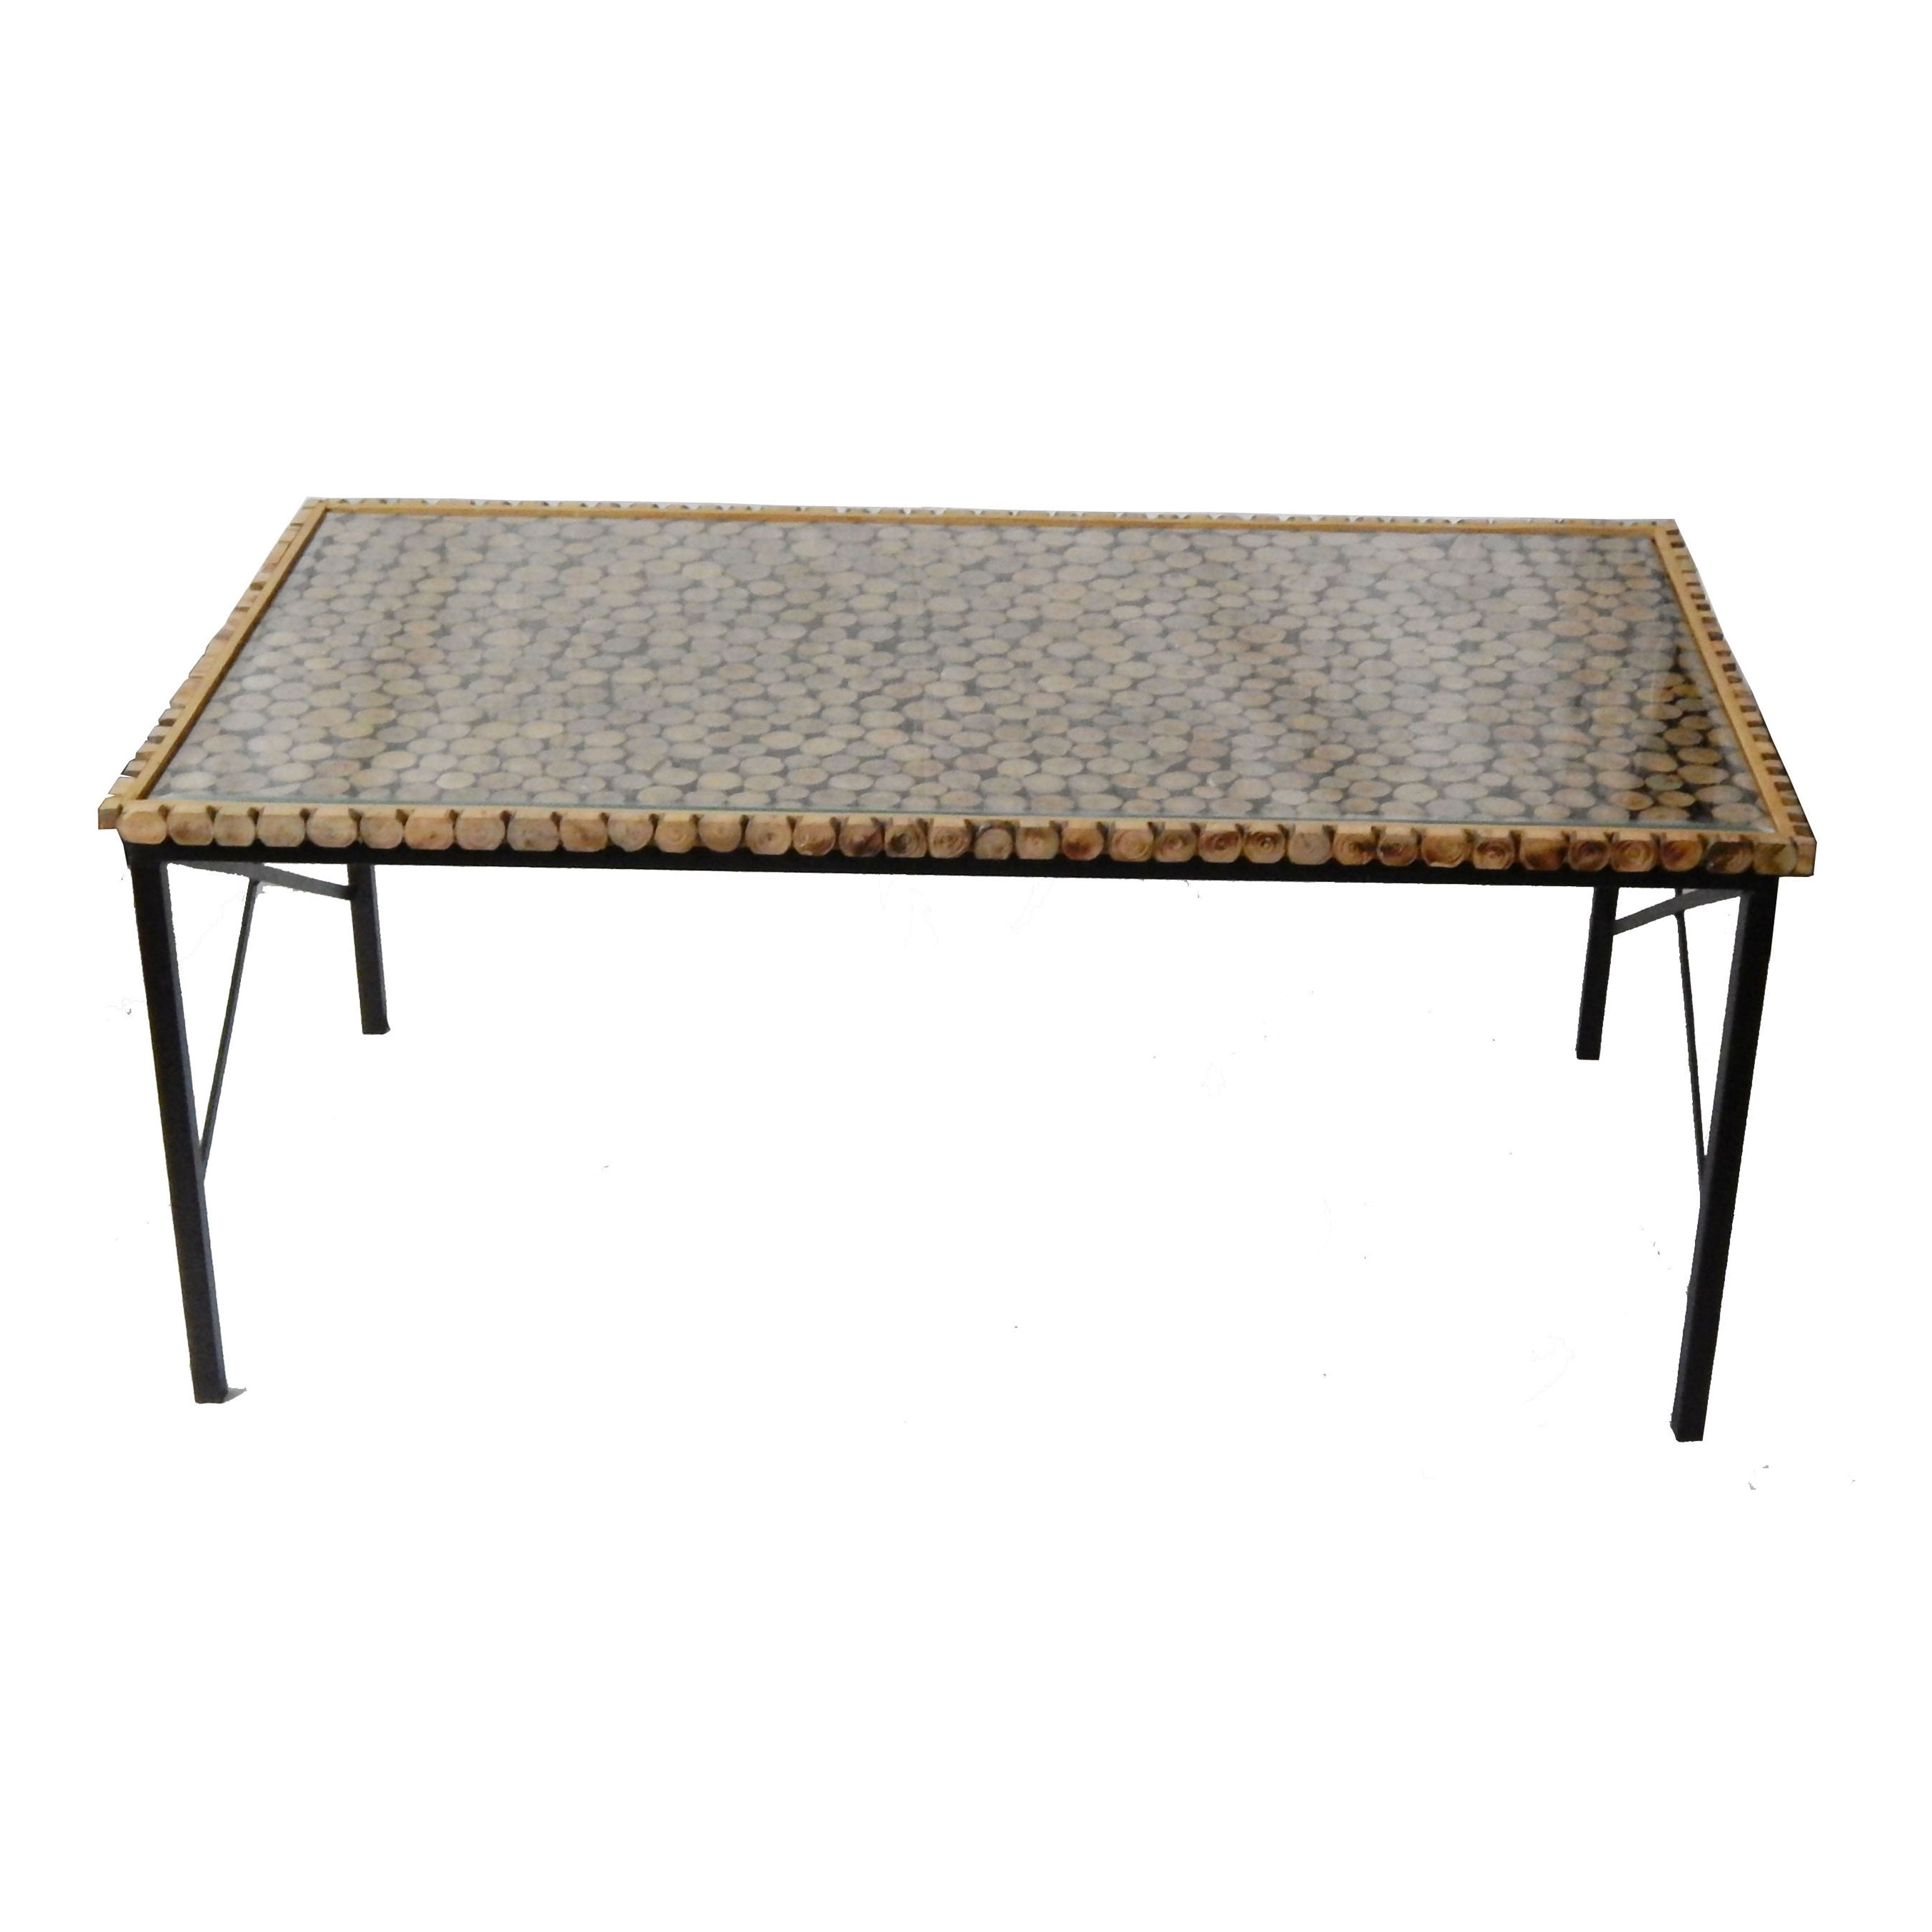 Center Table-Hot selling luxury Table With Wooden And Glass Top center table